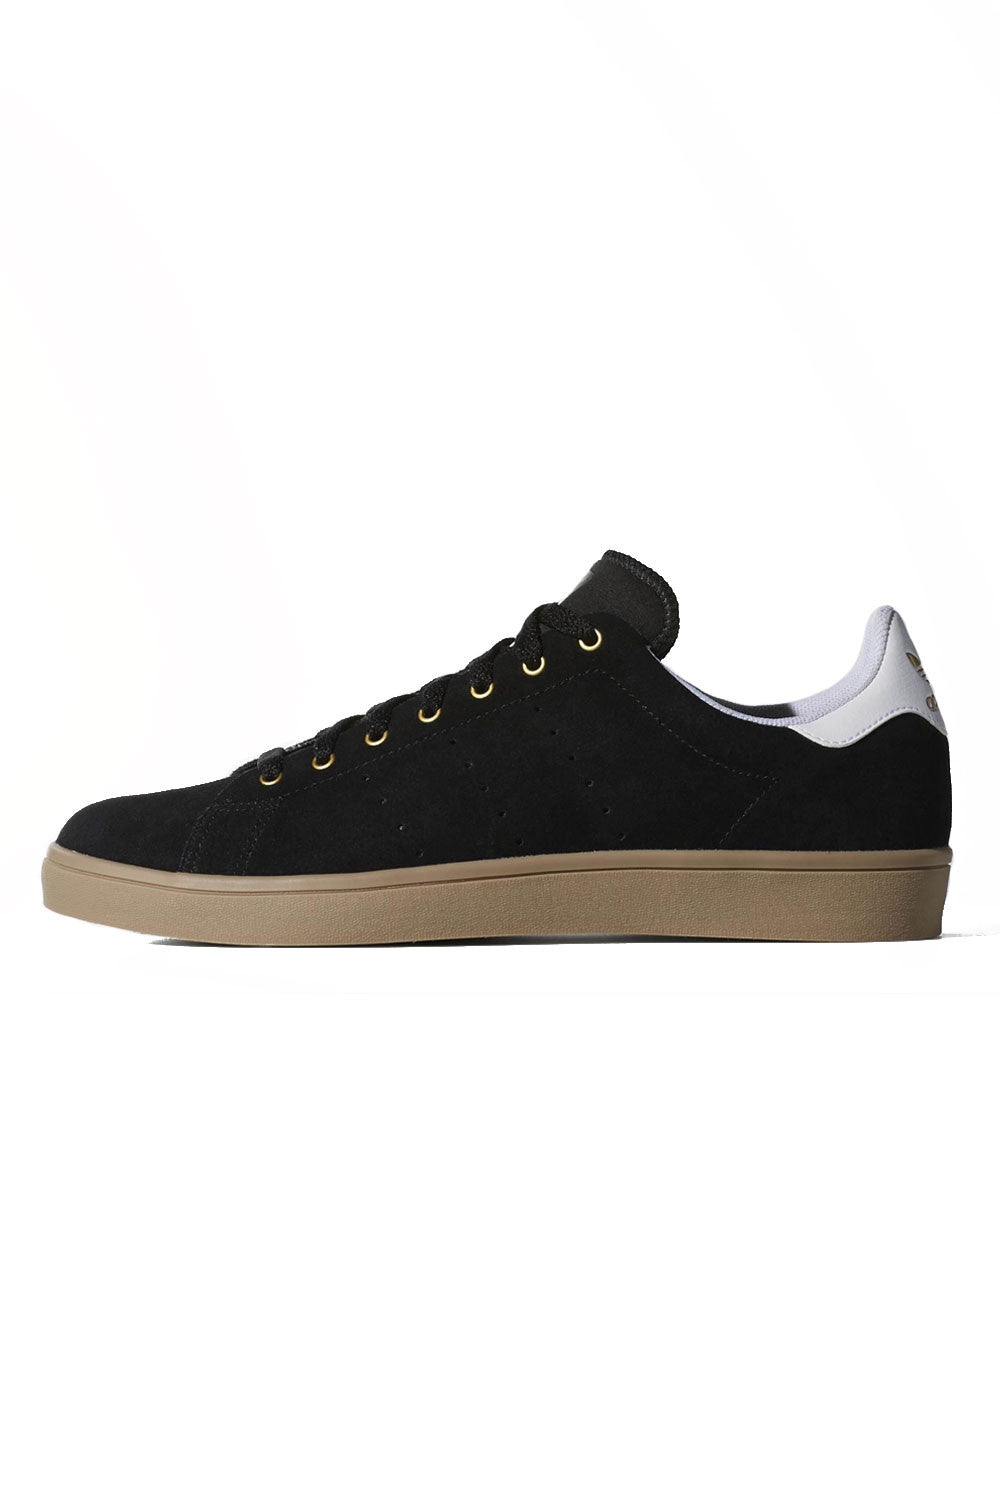 Adidas Stan Smith Vulcanized Shoes